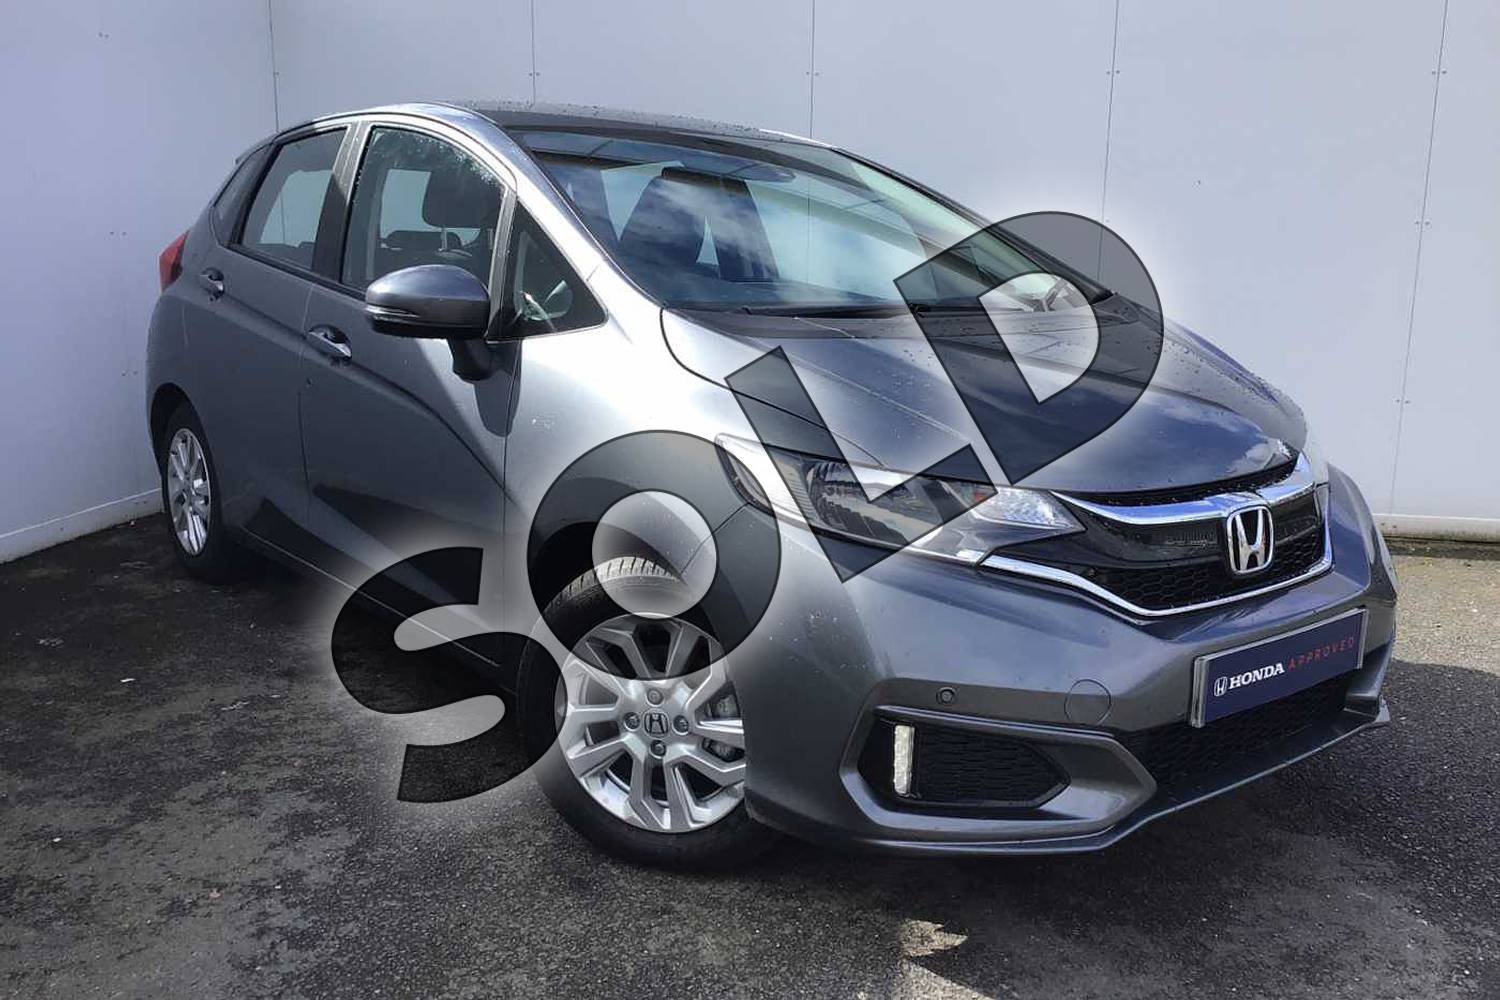 2020 Honda Jazz Hatchback 1.3 i-VTEC SE 5dr in Shining Grey at Listers Honda Solihull